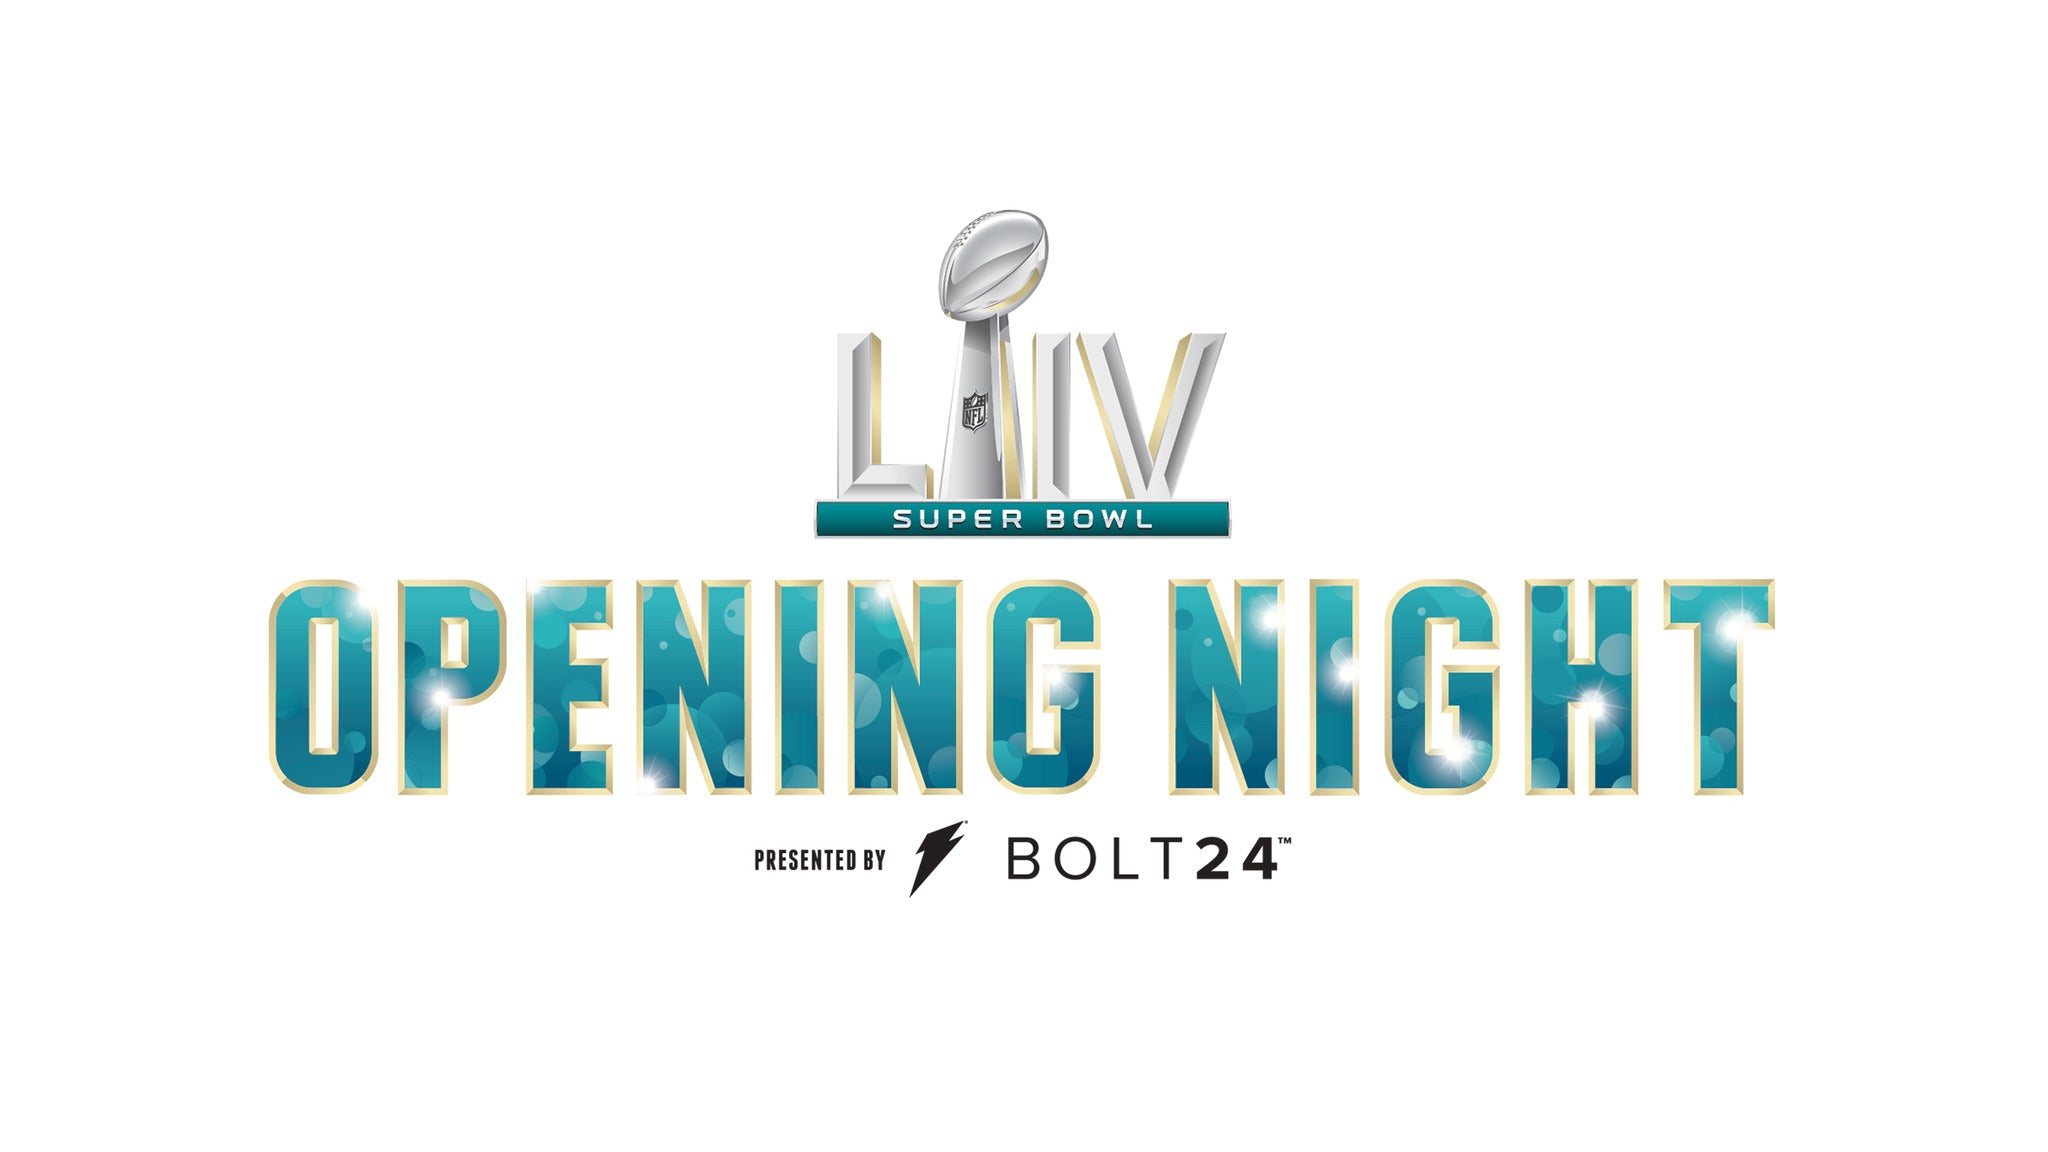 Opening Night Presented by Bolt 24